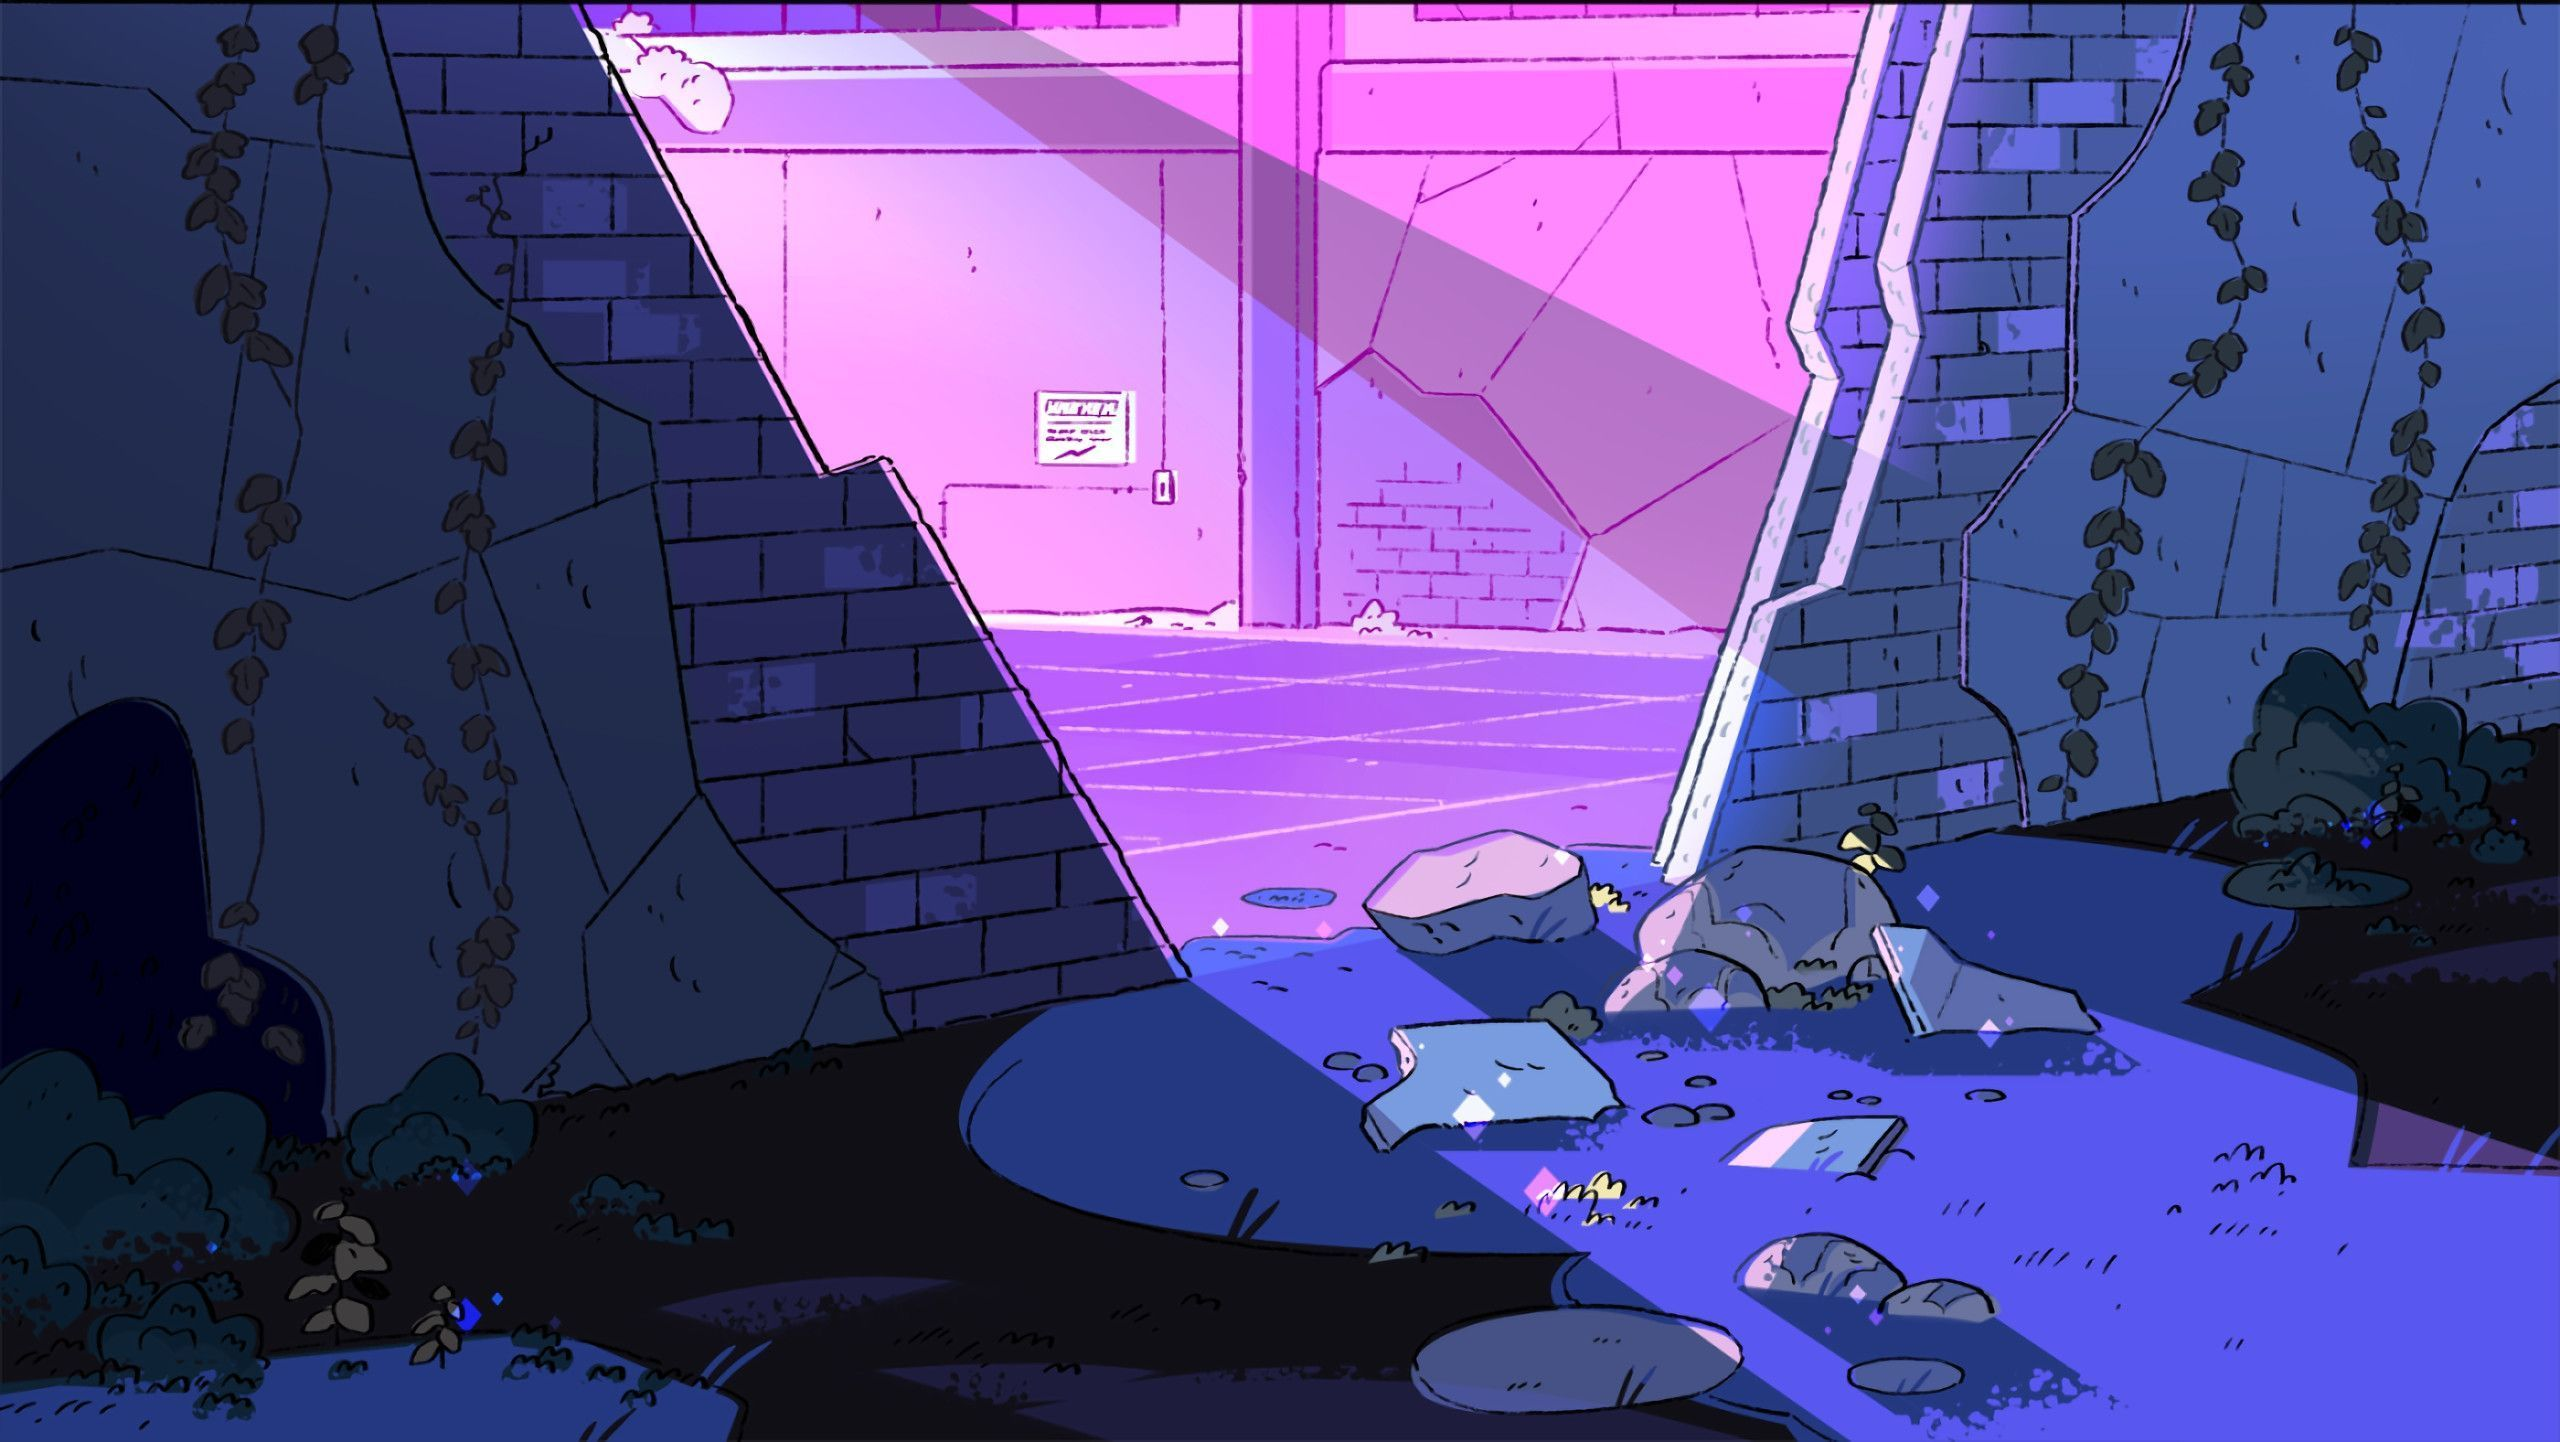 Anime Wallpaper Aesthetic Computer Http Wallpapersalbum Com Anime Wallpaper Aesthetic In 2020 Aesthetic Desktop Wallpaper Anime Wallpaper Steven Universe Background